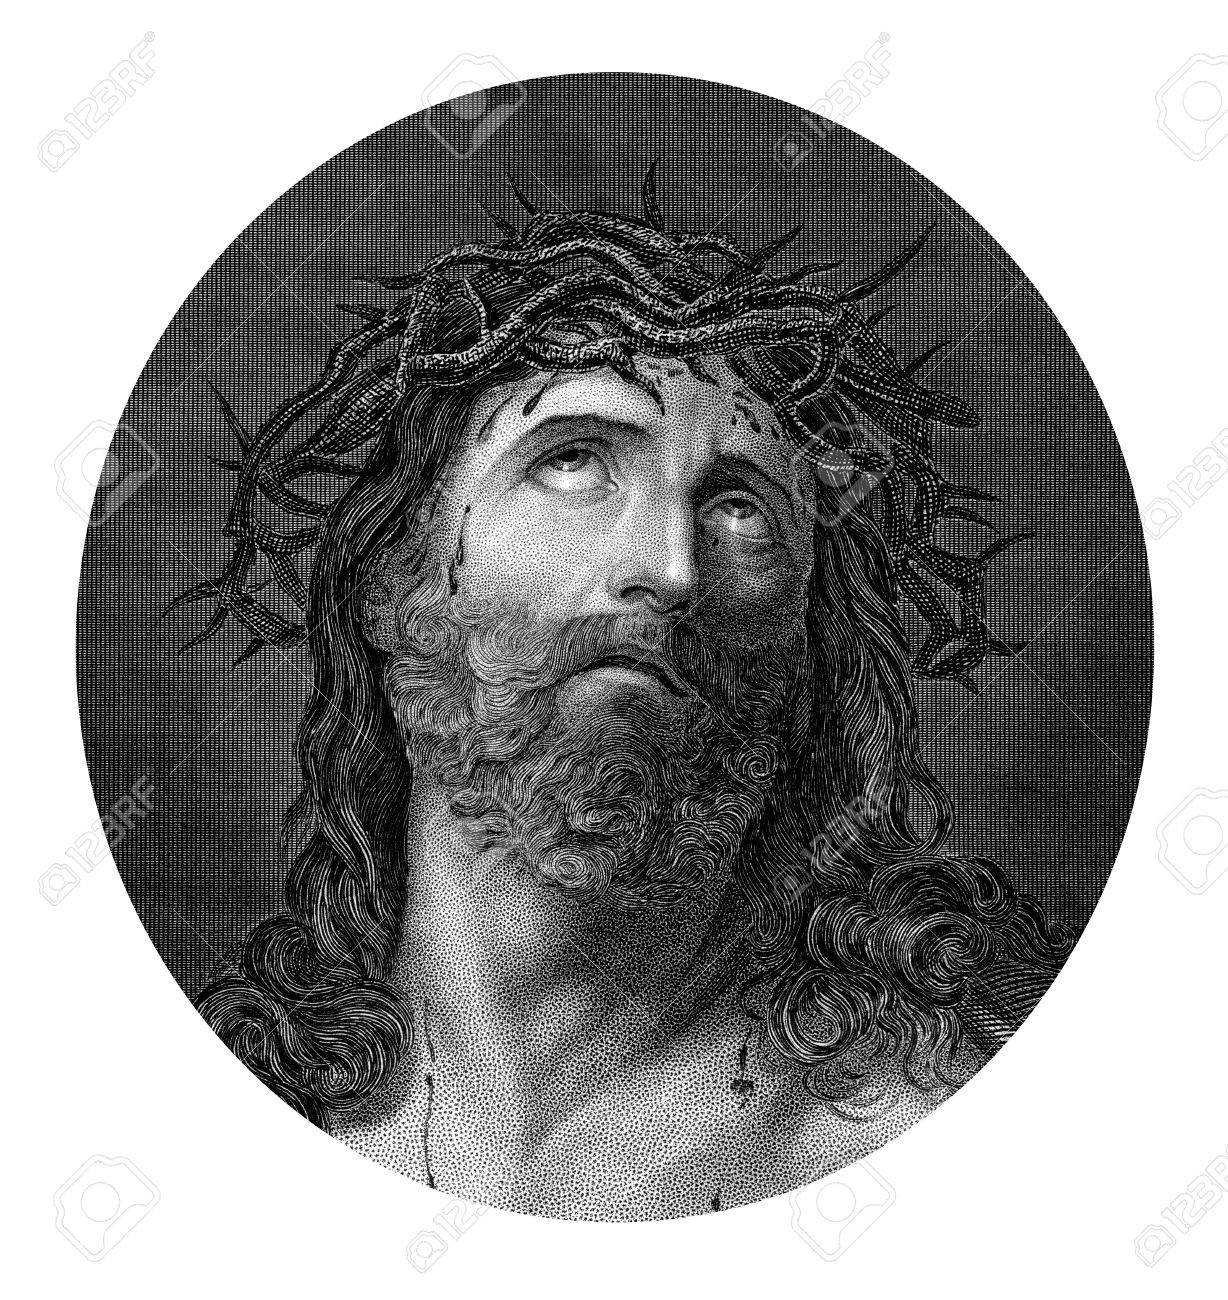 an engraved illustration drawing portrait of the crucifixion